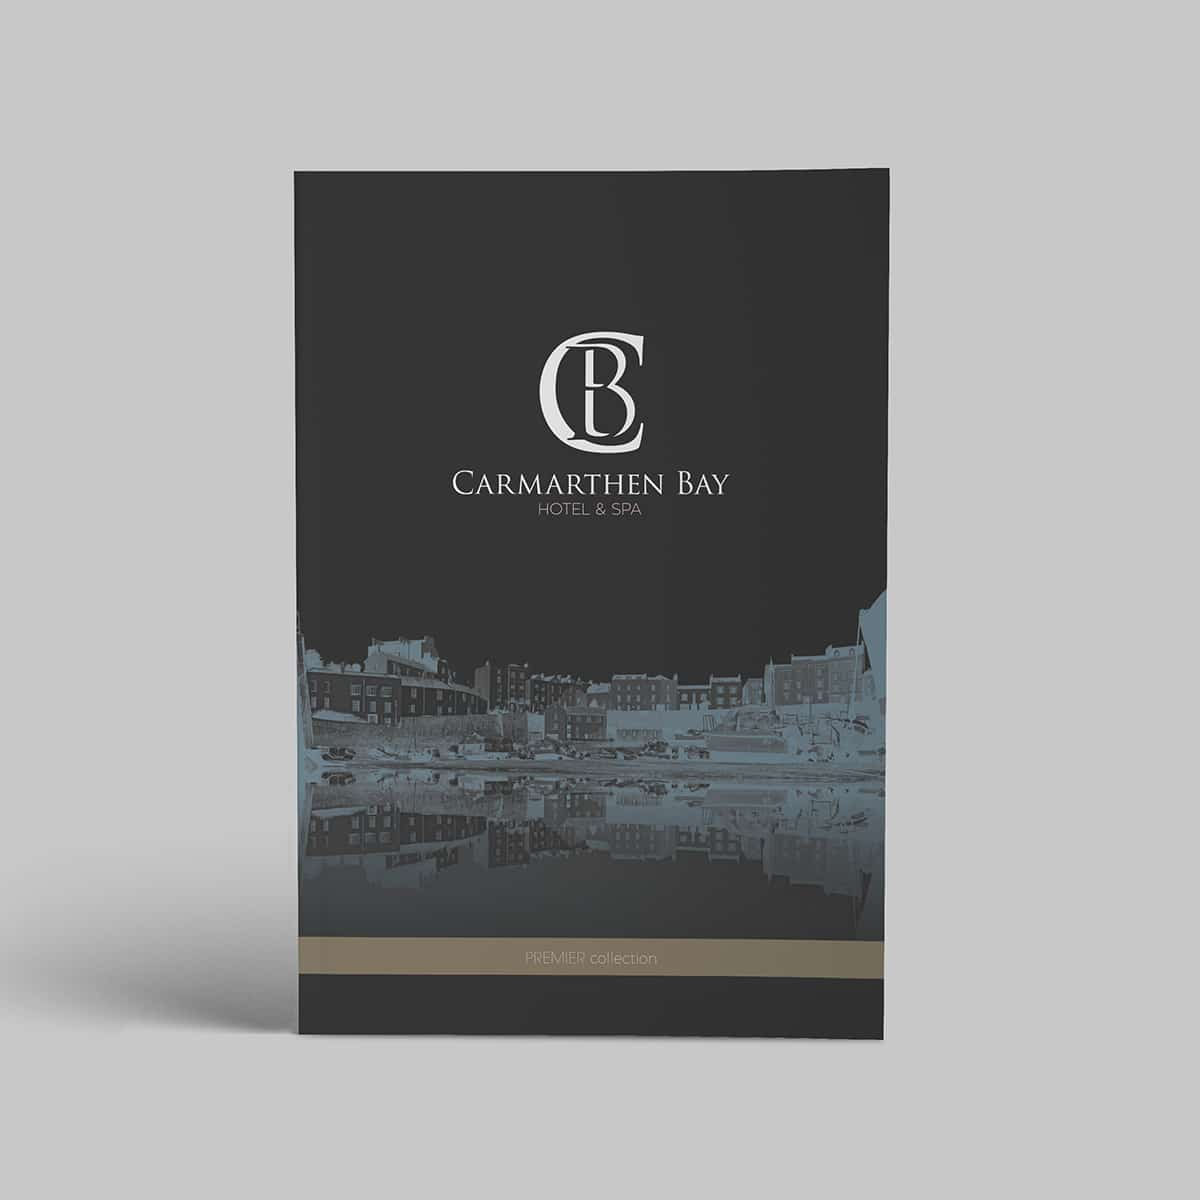 Cover design of brochure for Carmarthen Bay Hotel & Spa featuring logo